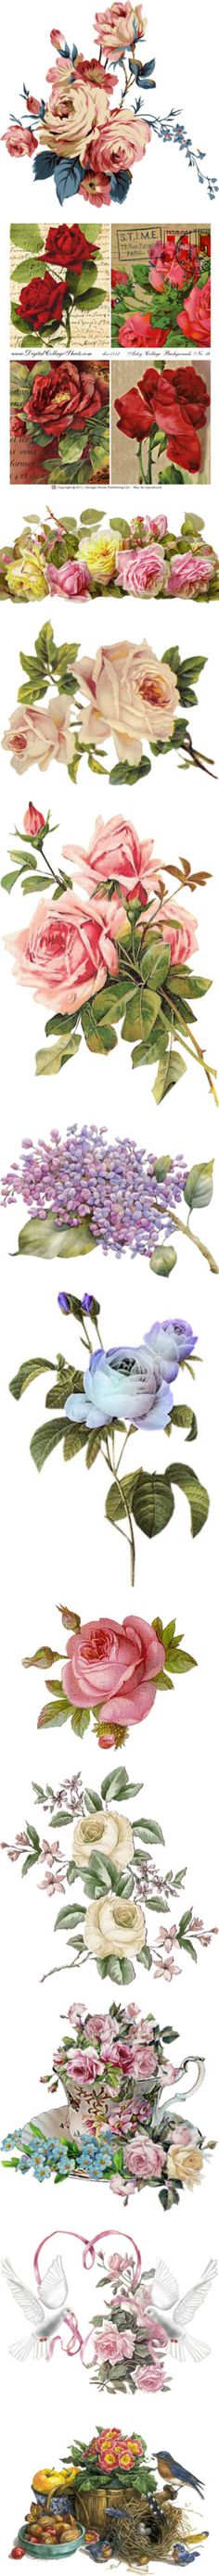 """Victorian Flowers"" by maneevanit ❤"